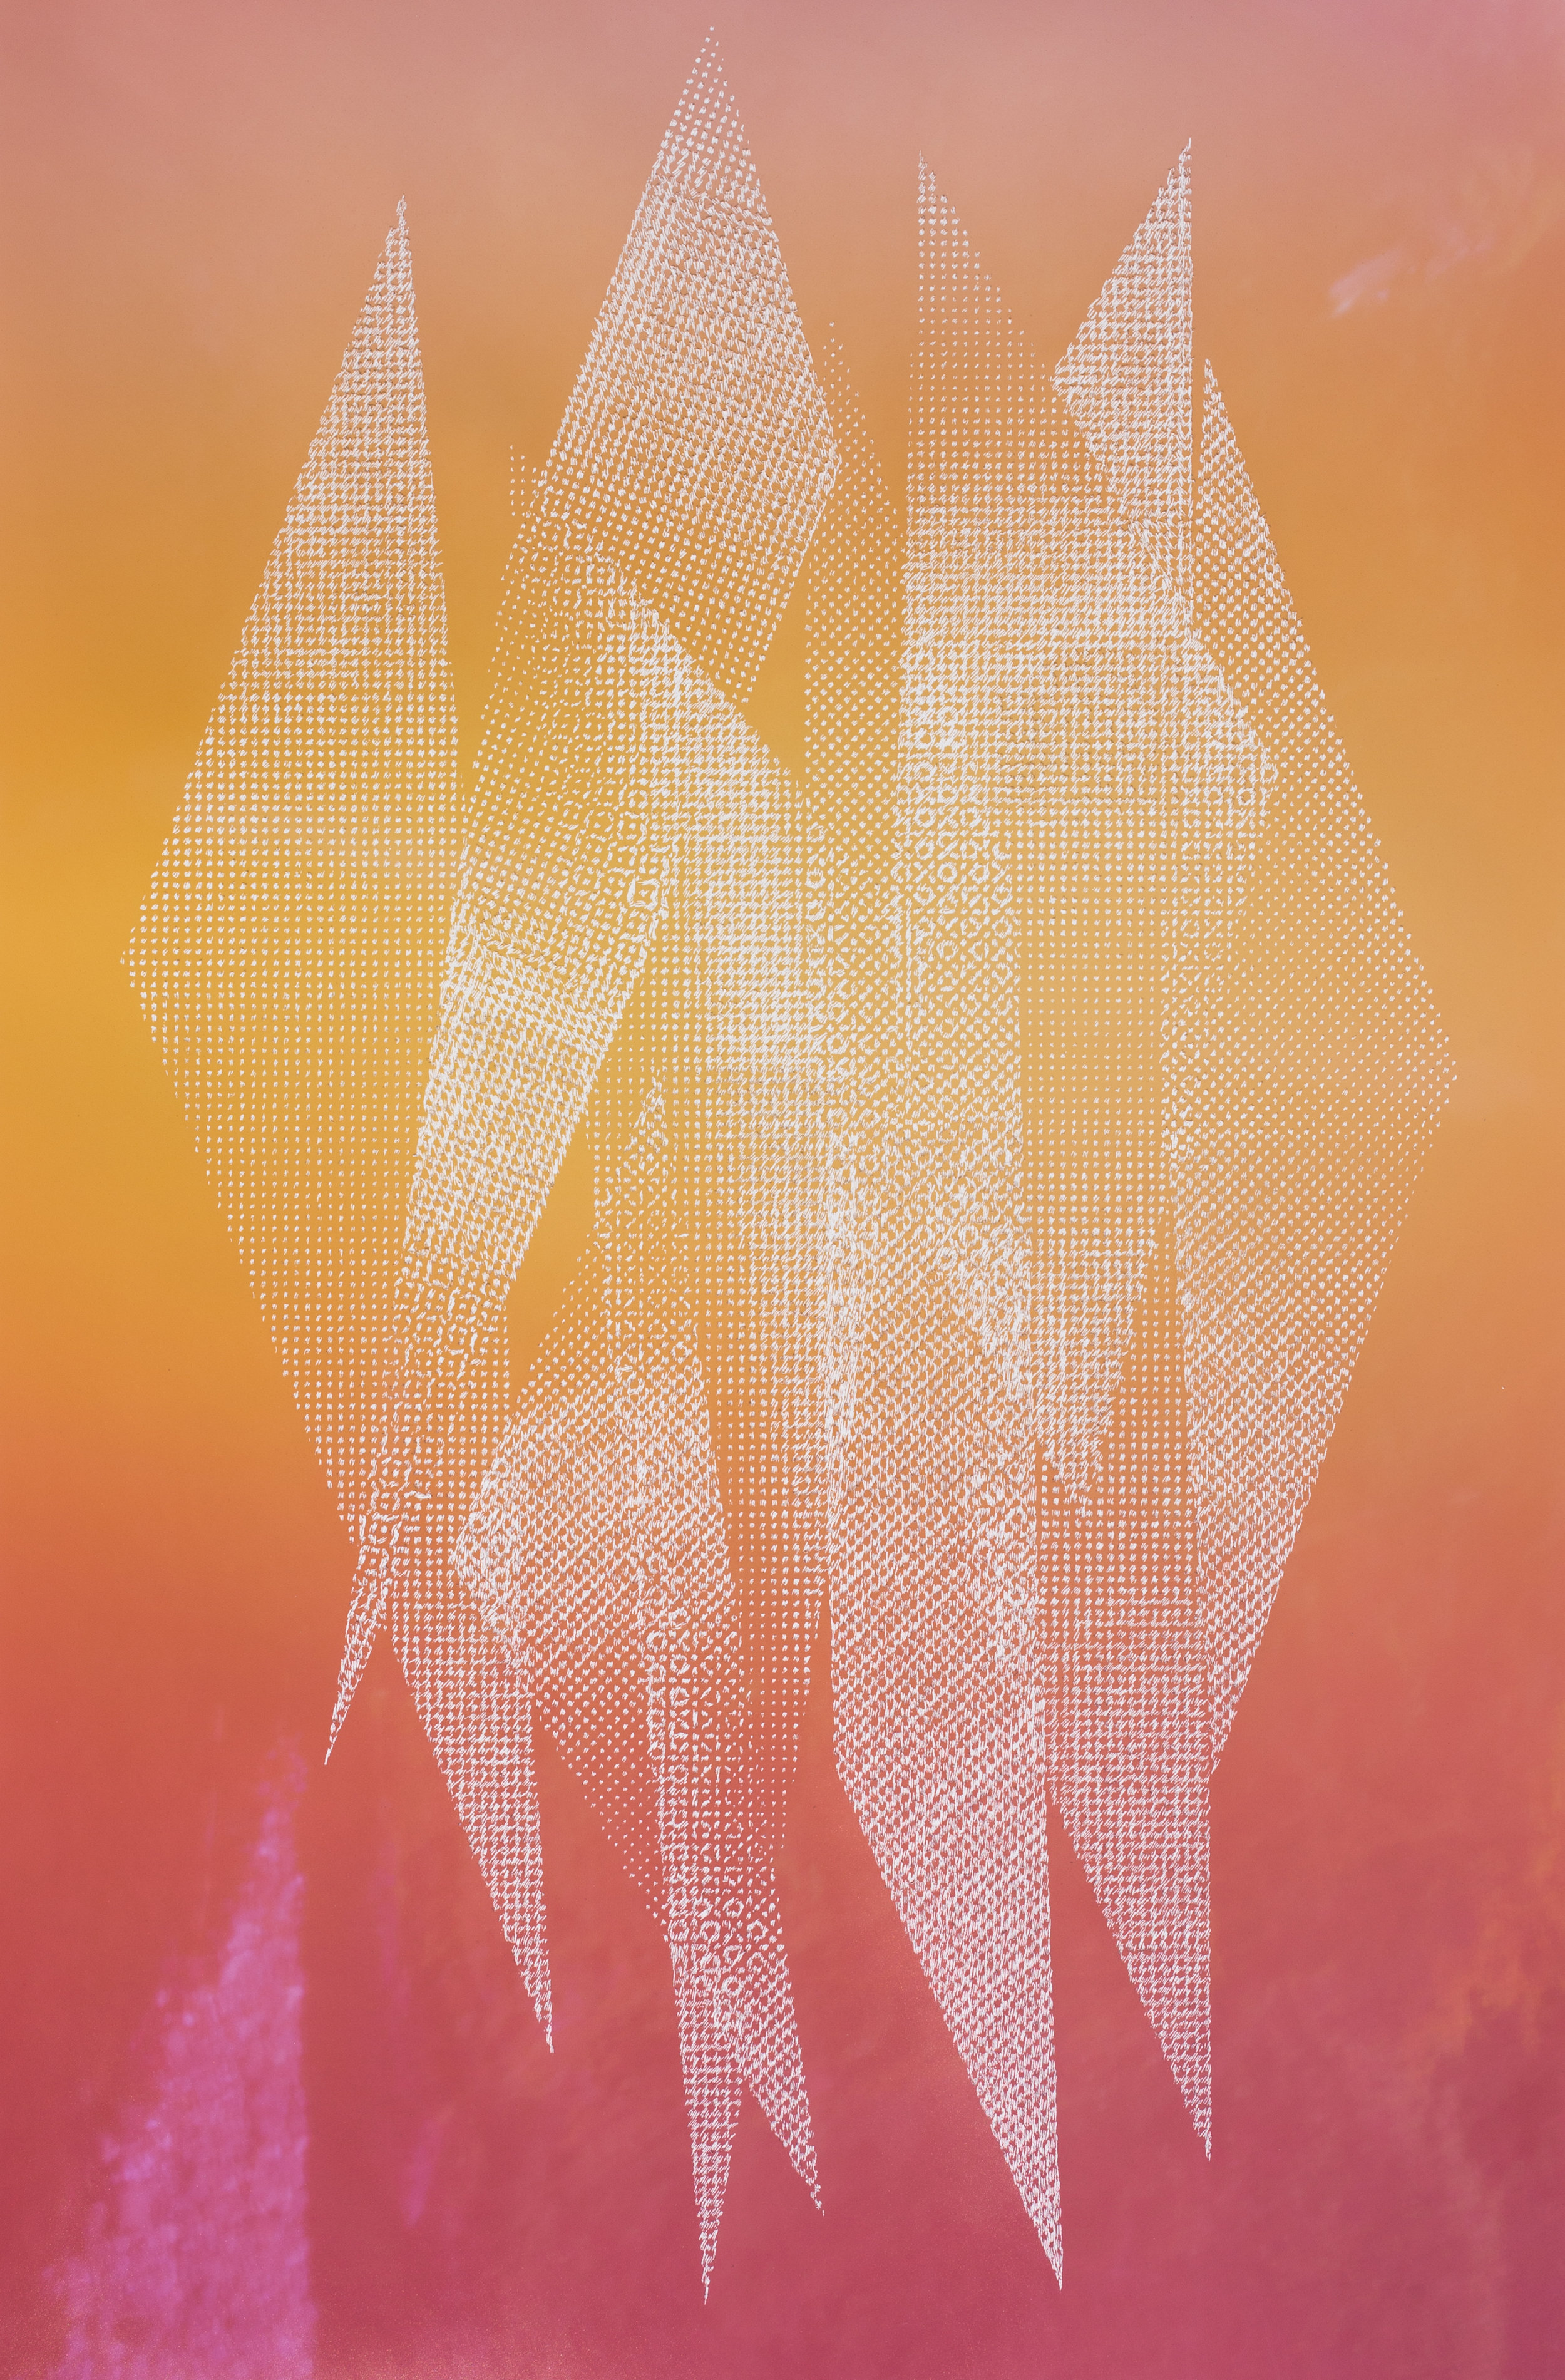 Christopher Russell Mountain XVI, 2017 Pigment print scratched with a razor